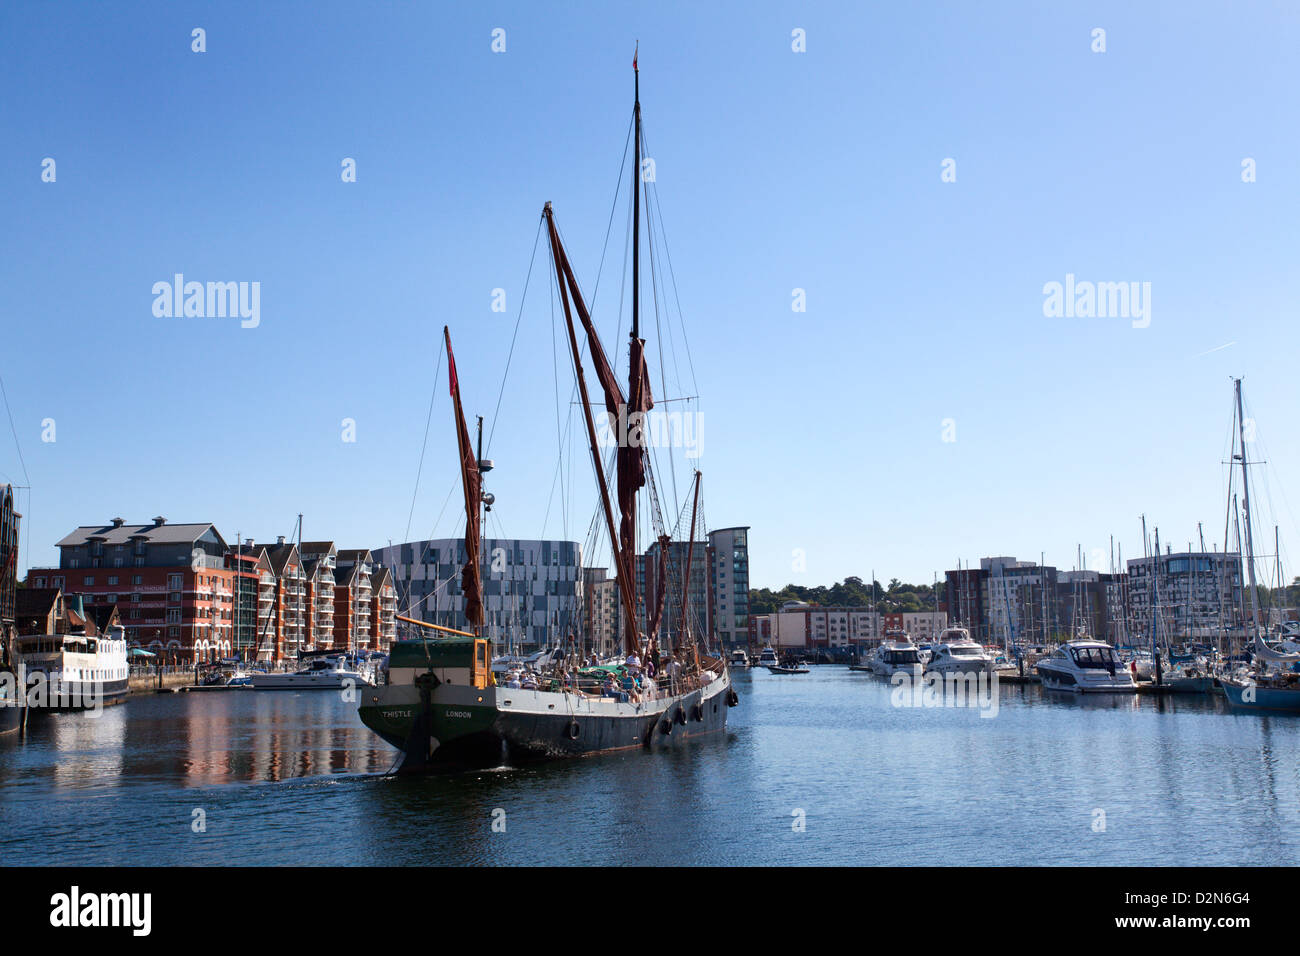 Sailing ship leaving the Quayside at Ipswich Marina, Ipswich, Suffolk, England, United Kingdom, Europe - Stock Image